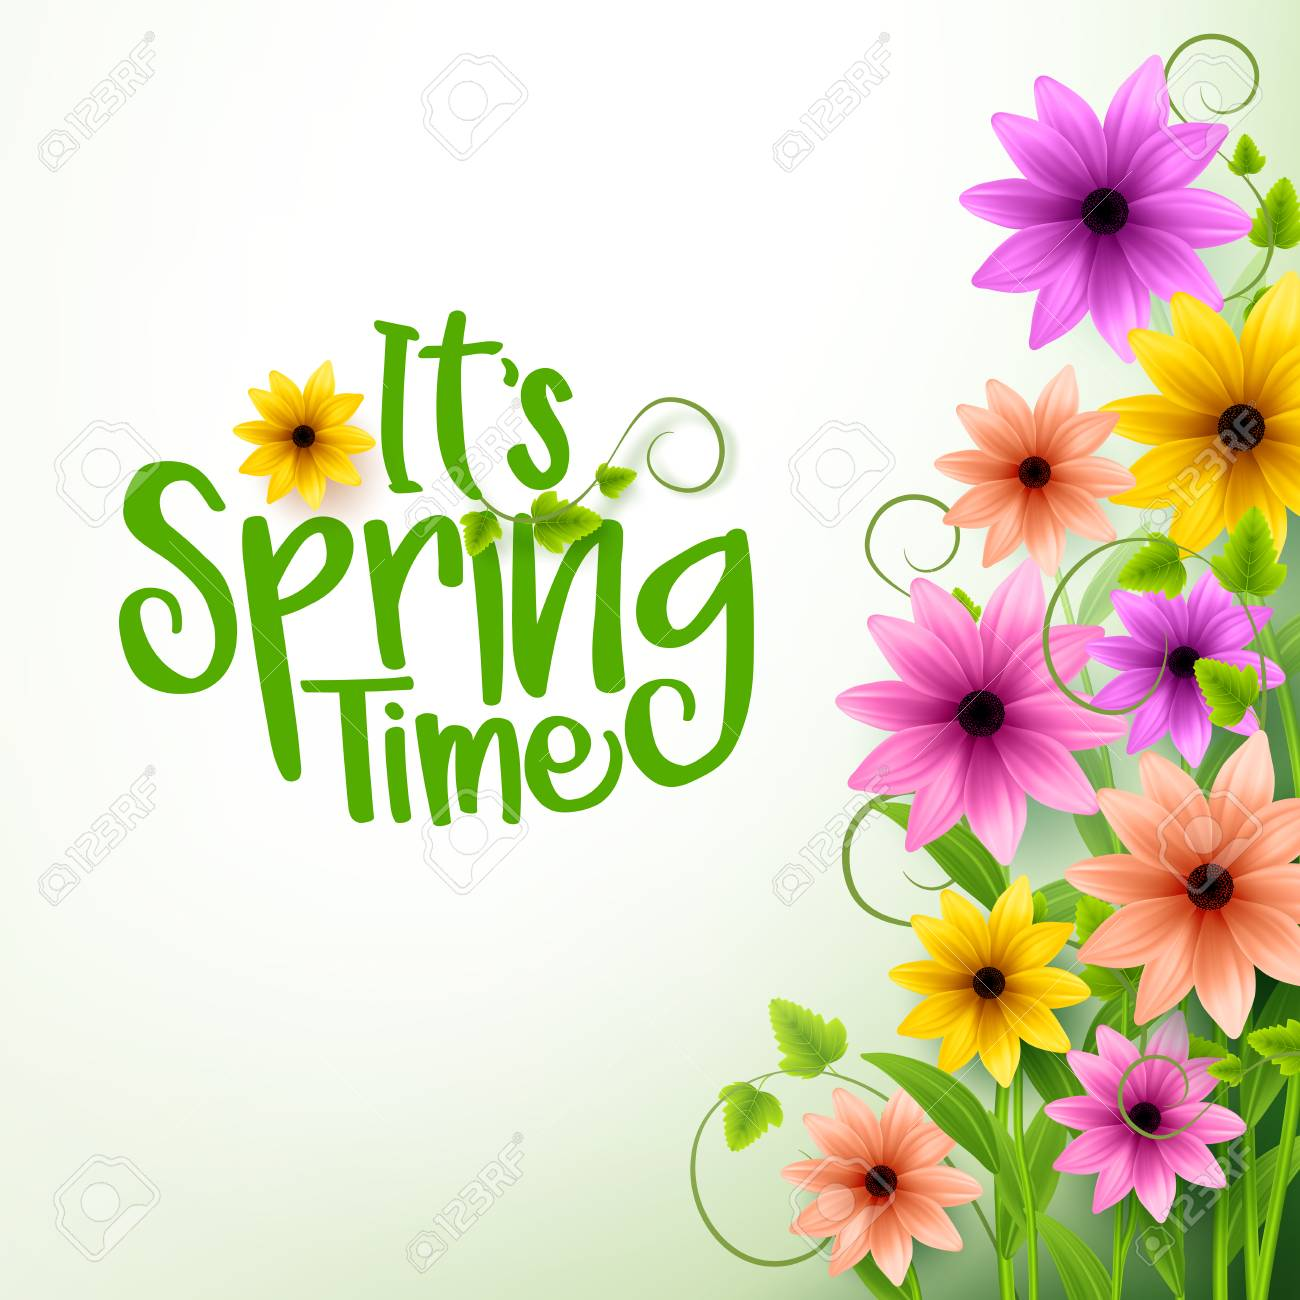 Vector Spring Time Text in White Background with Realistic 3D Colorful Flowers and Vines. Vector Illustration - 51870874